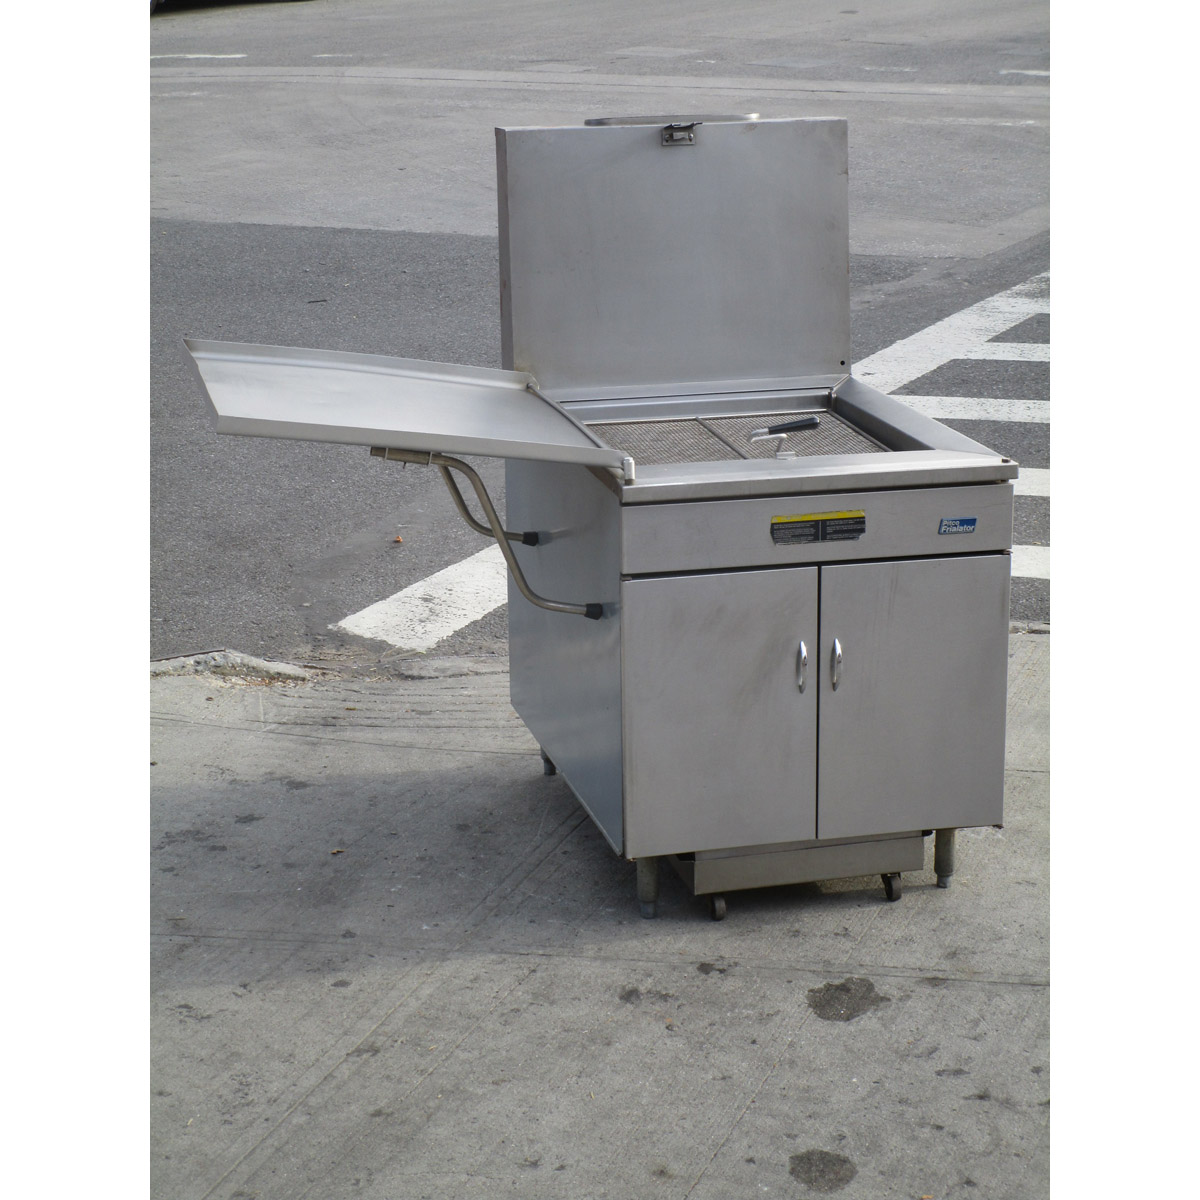 Pitco Gas Donut Fryer Filter Very Good Condition Product Photo